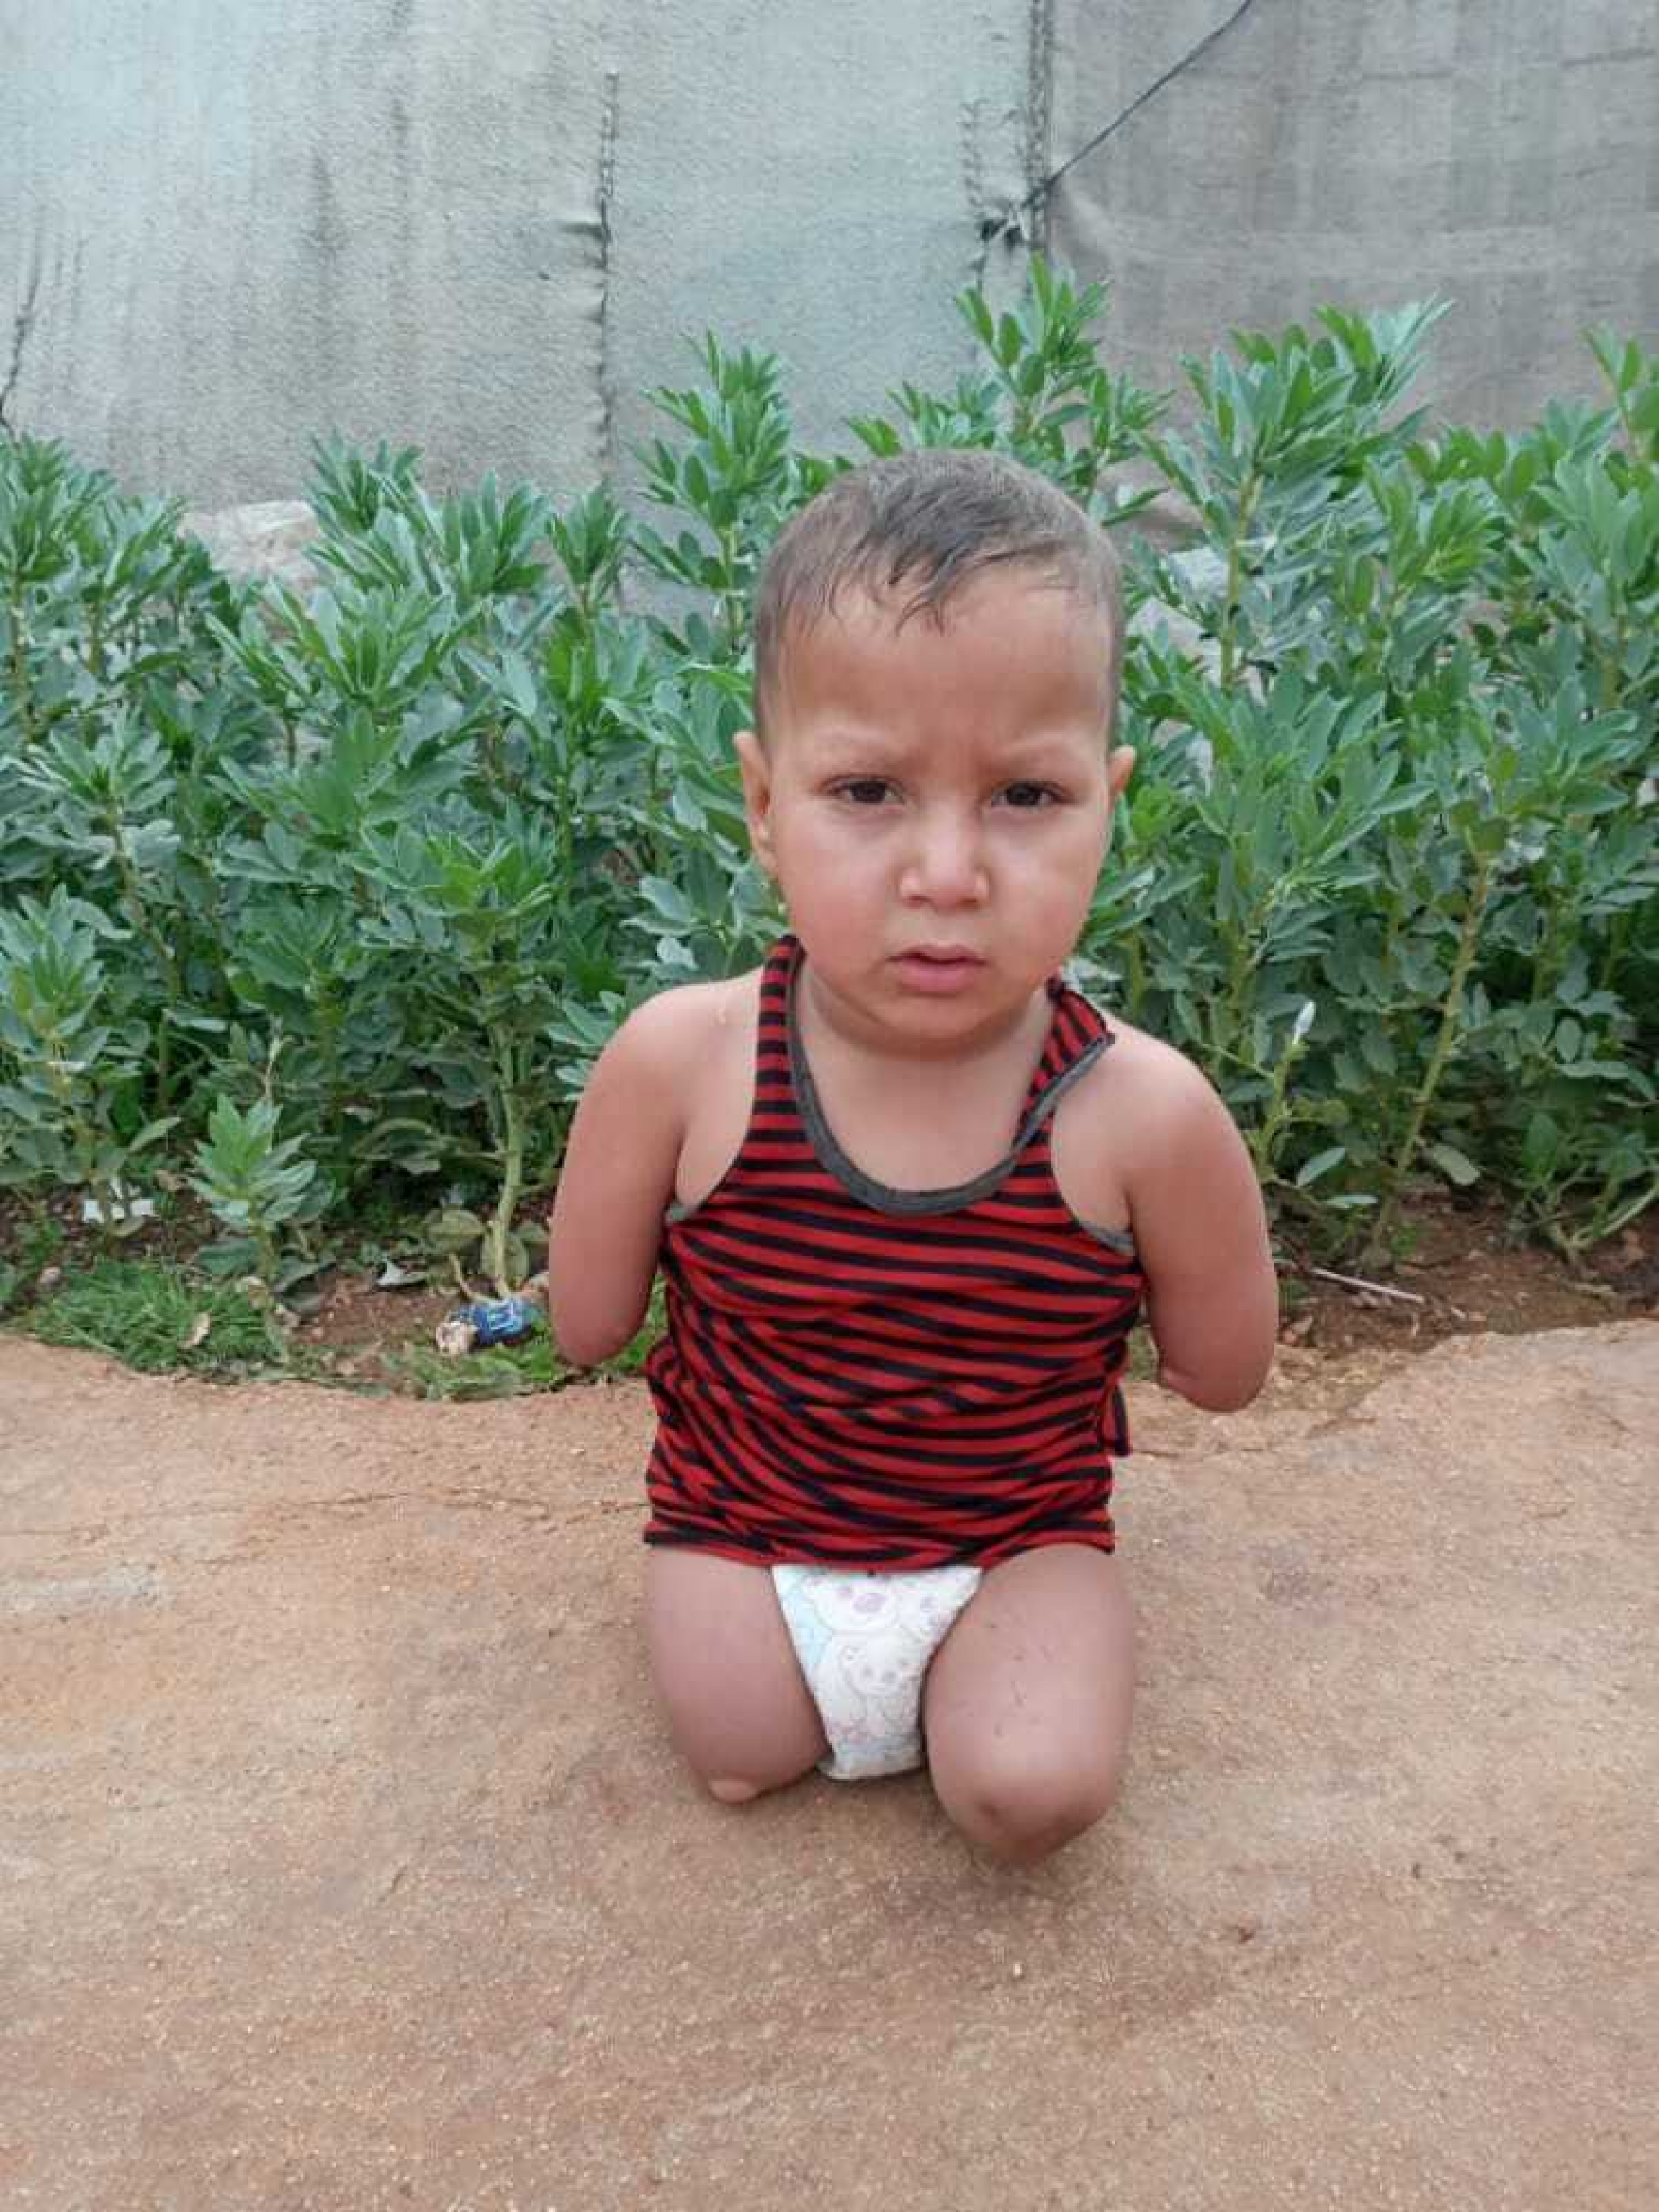 Four-year-old Assef al-Ablo, whose parents lived in the Khan Sheikhoun area in Syria, where the 2017 chemical attack took place, was born without limbs.